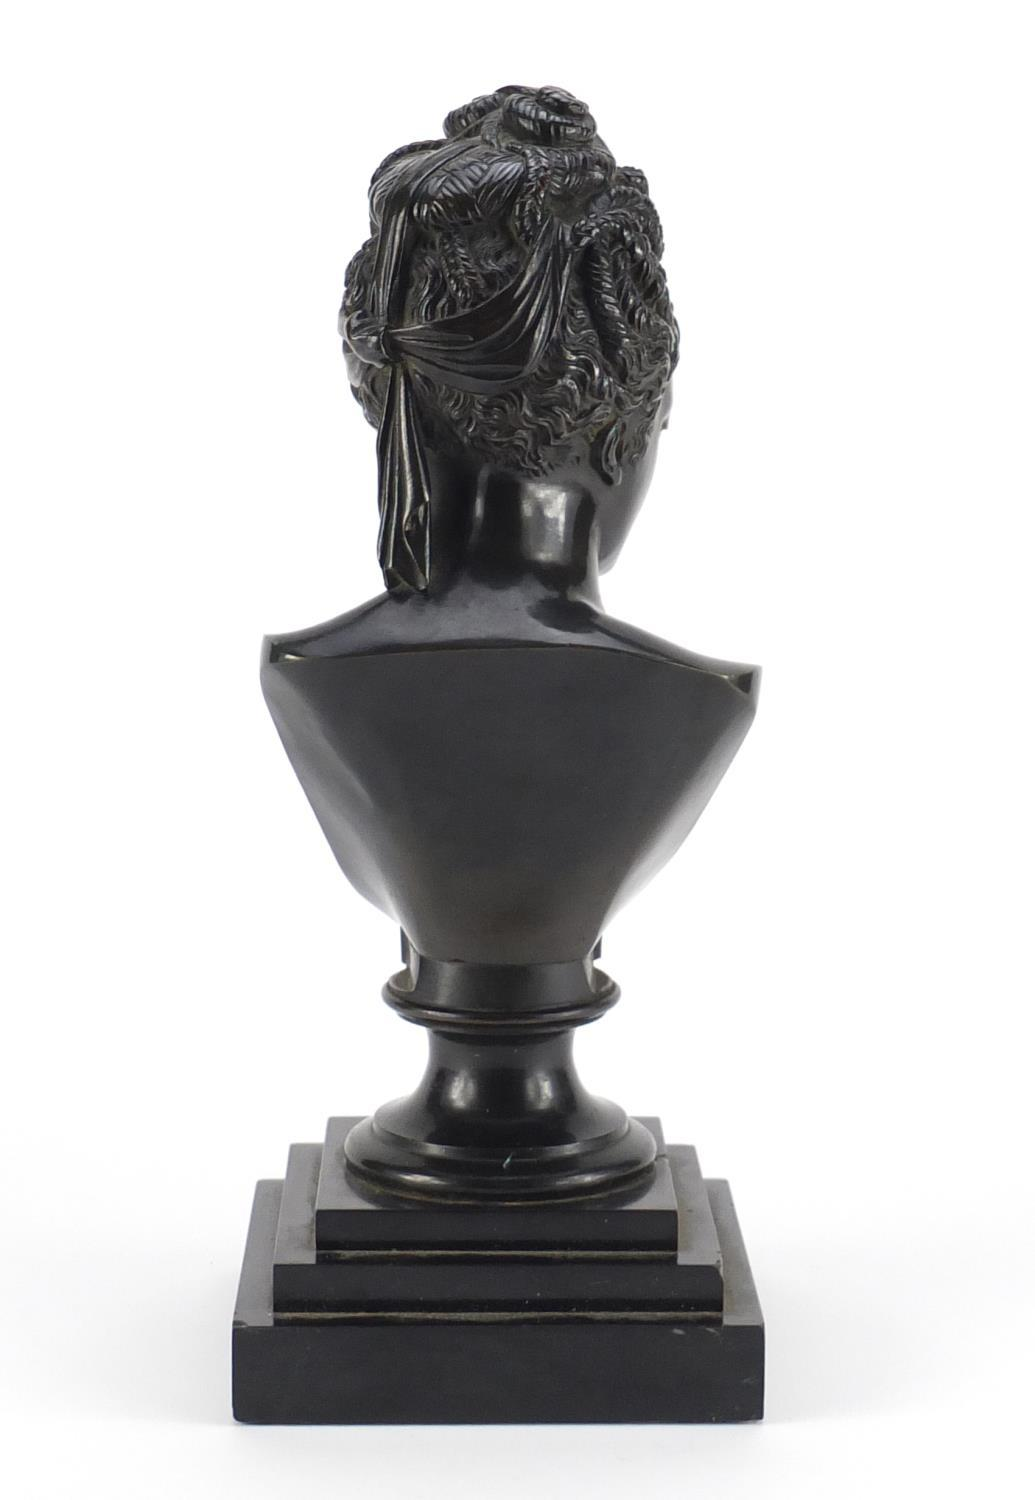 Lot 7 - 19th century classical patinated bronze bust of a nude female, raised on a square stepped black